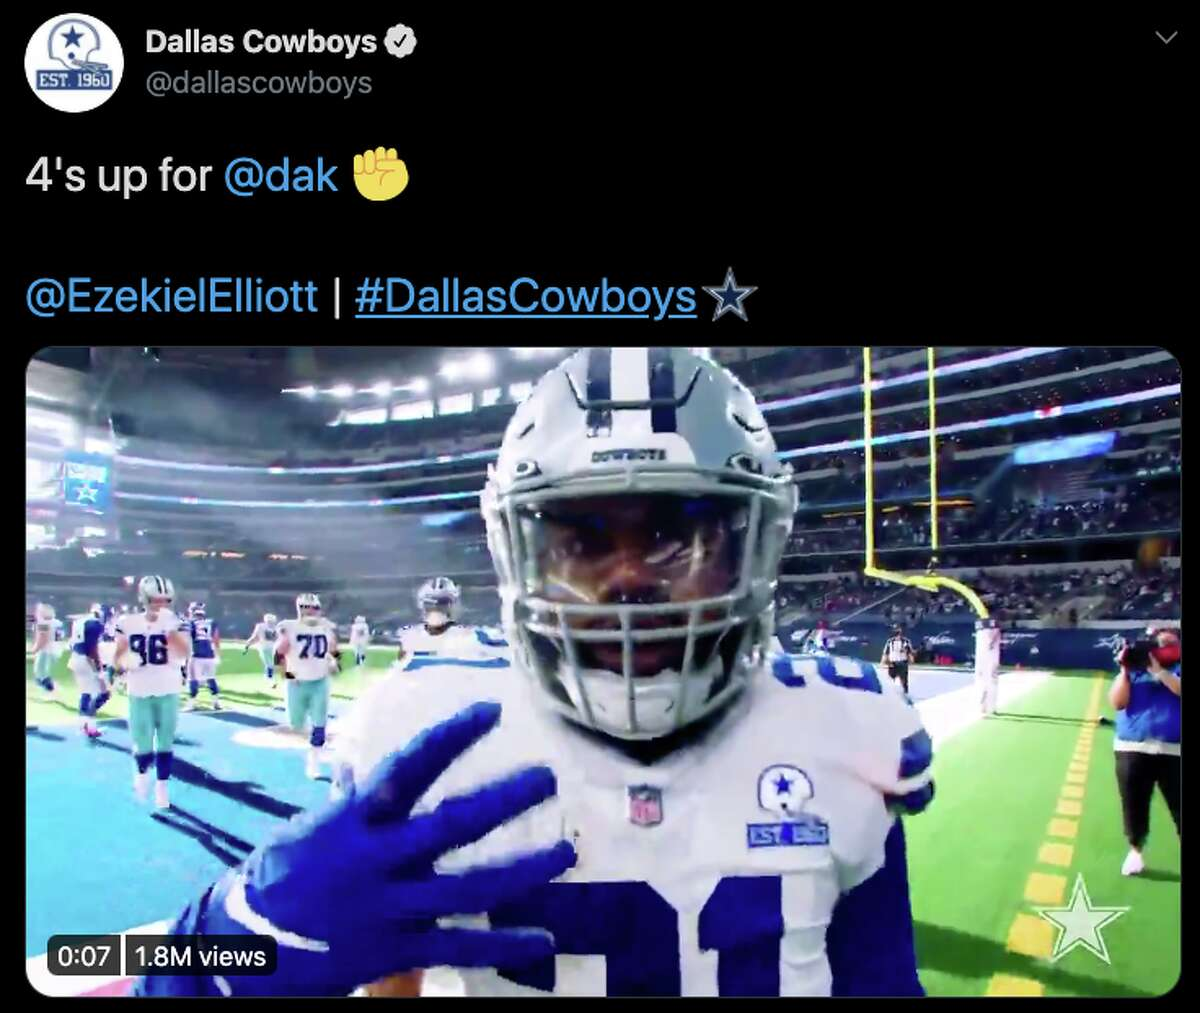 The Cowboys team account supported its QB with a tweet encouraging fans to put